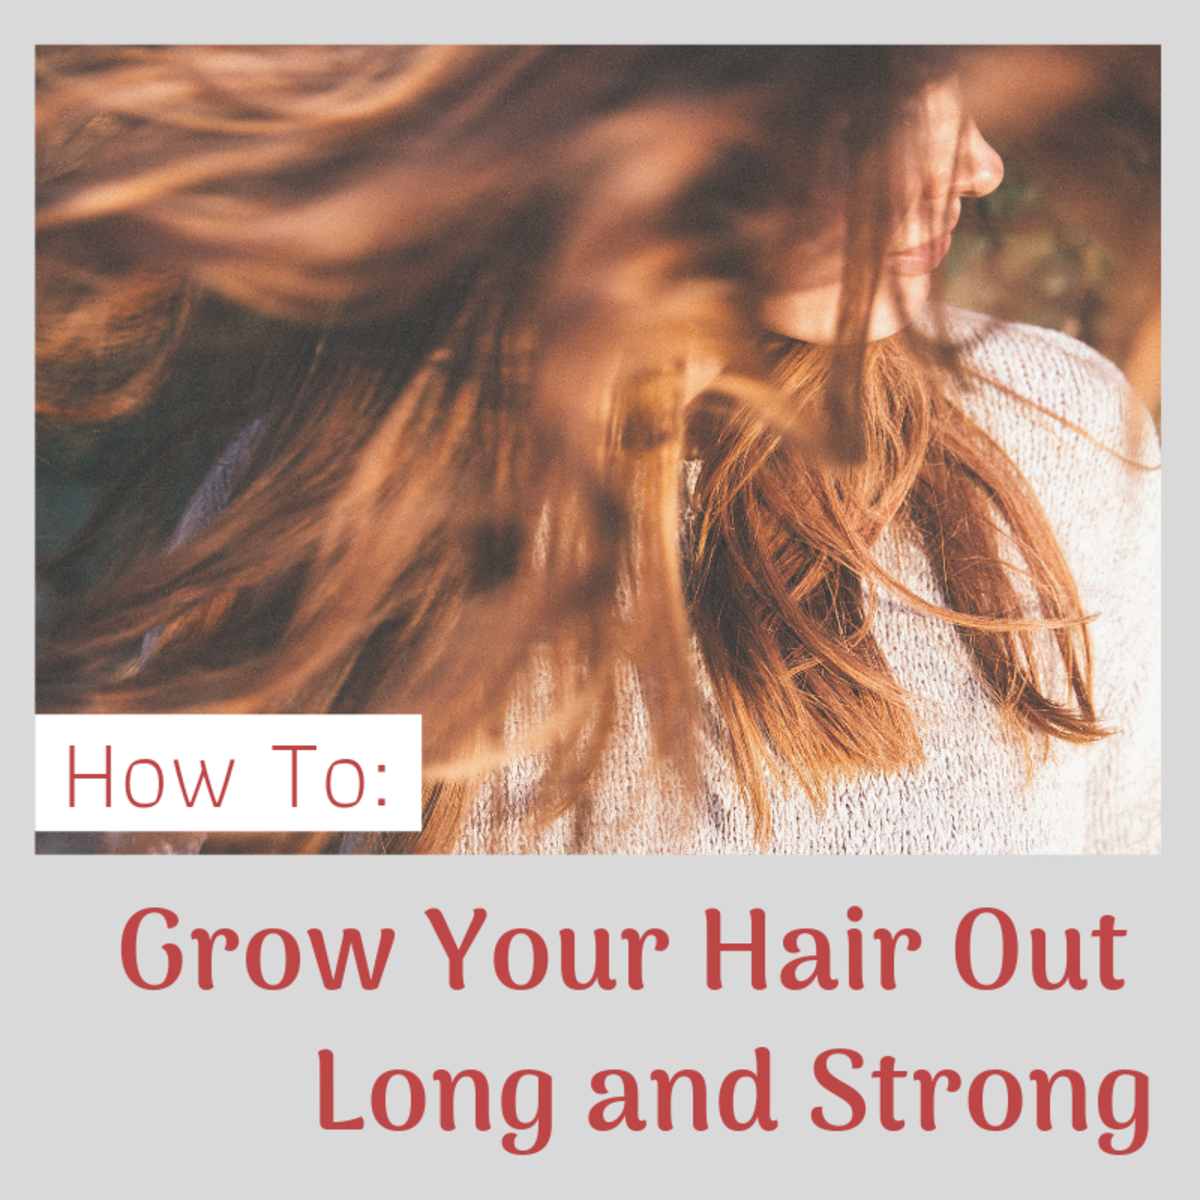 Try these professional tips and see real improvement in strand quality and length.